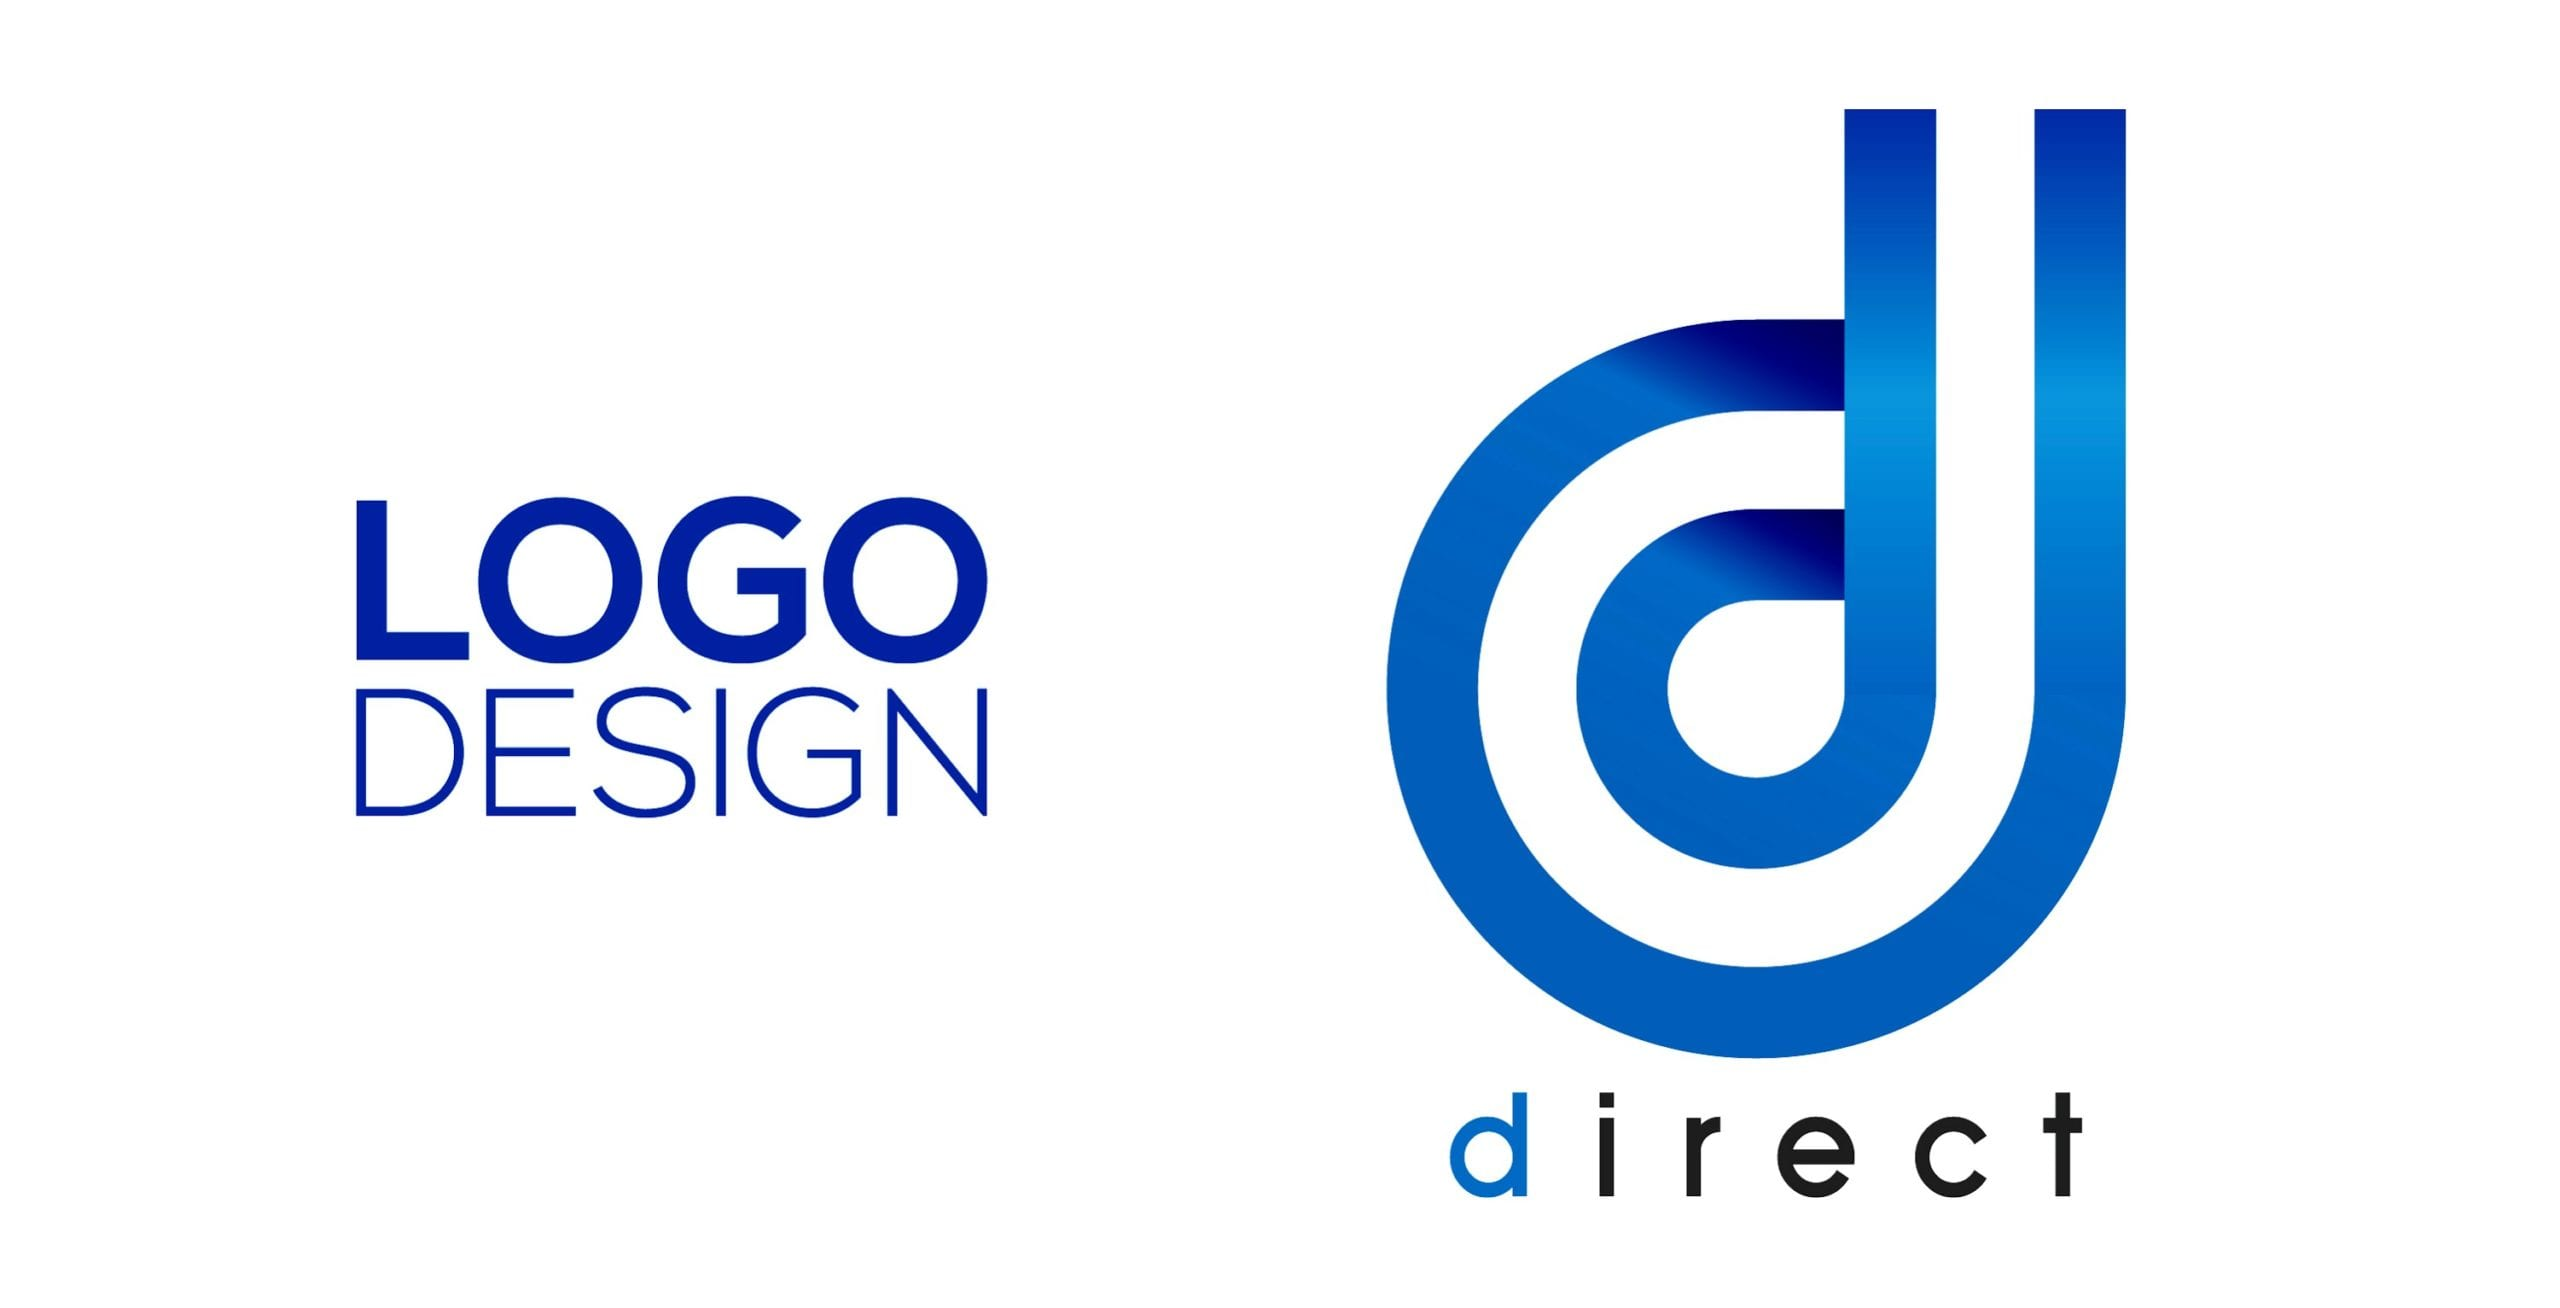 Professional logo design that stands out from the competition